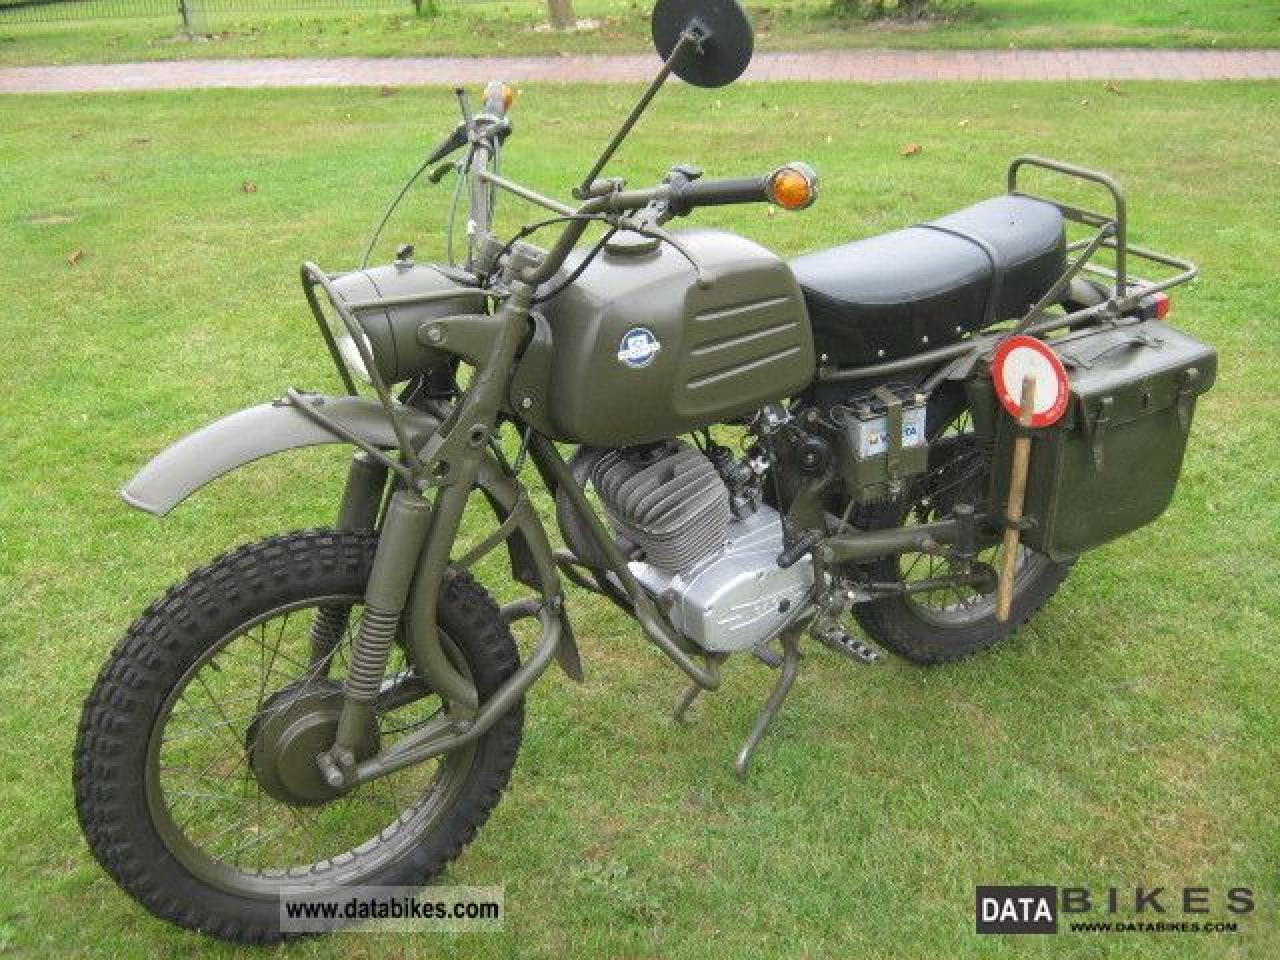 Hercules K 125 Military 1980 images #74134